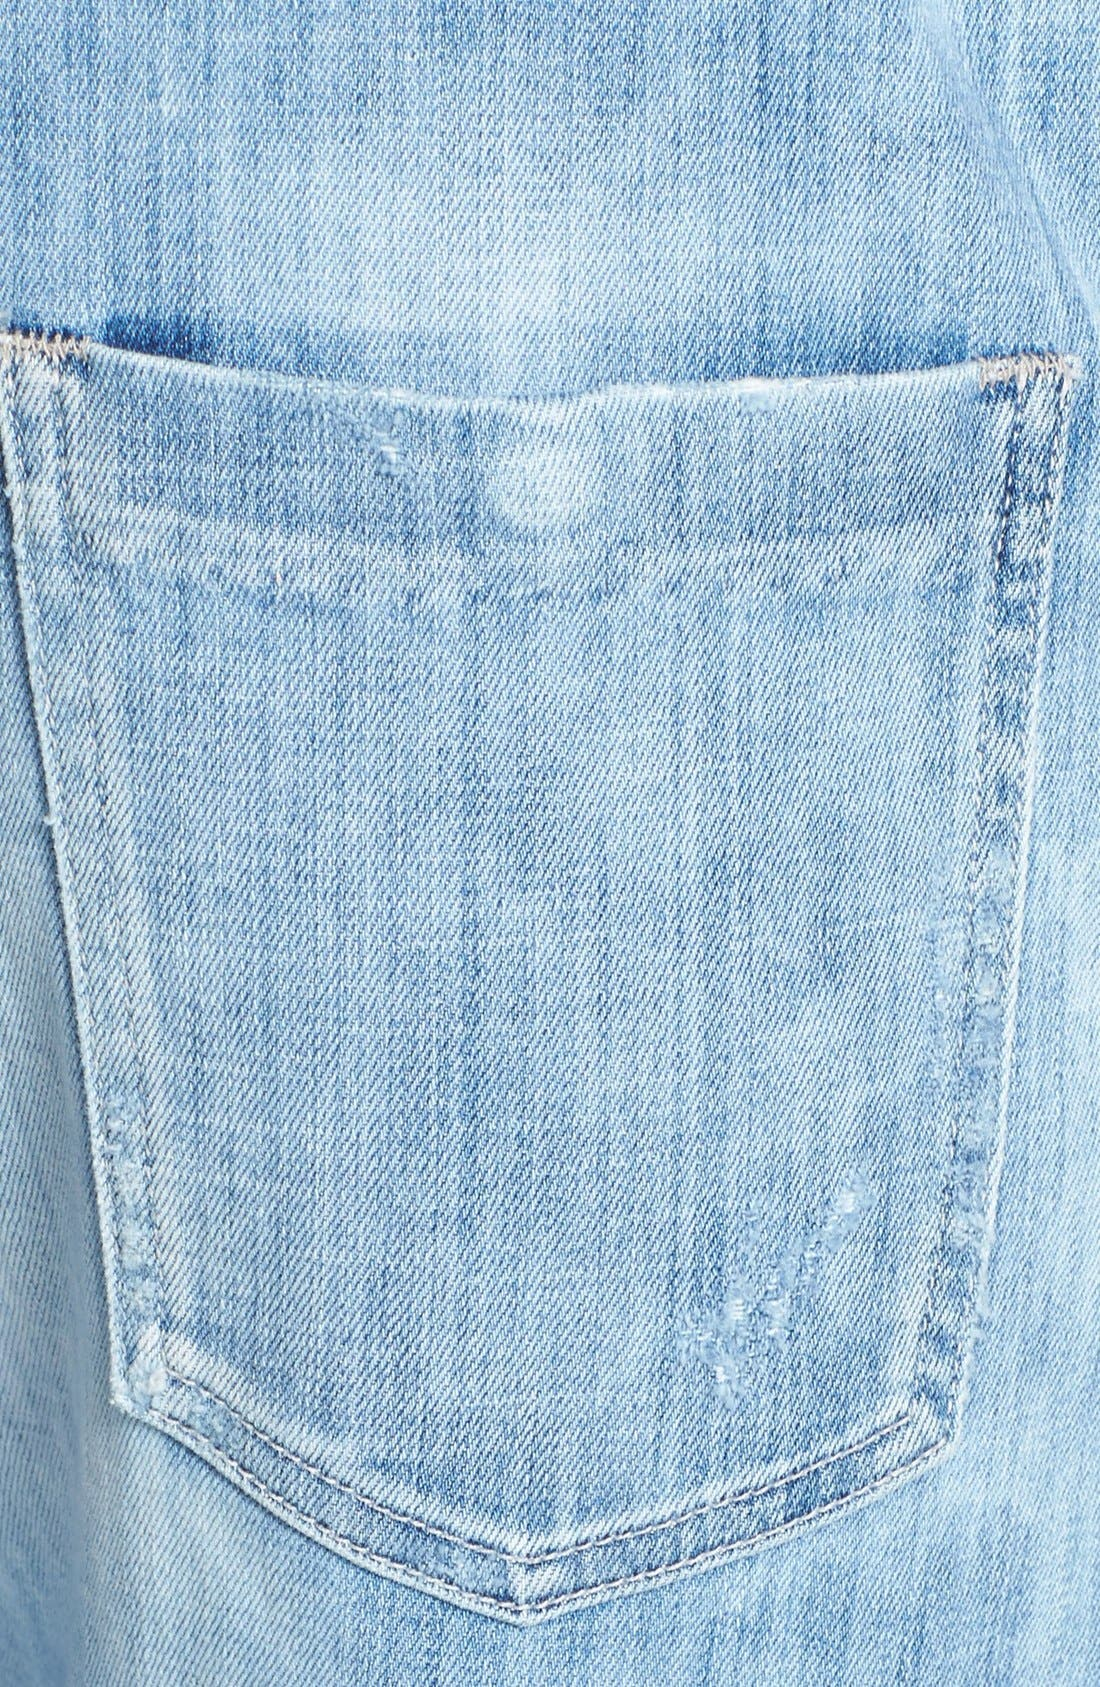 'Quincey' Distressed Denim Overalls,                             Alternate thumbnail 3, color,                             Sun Bleach